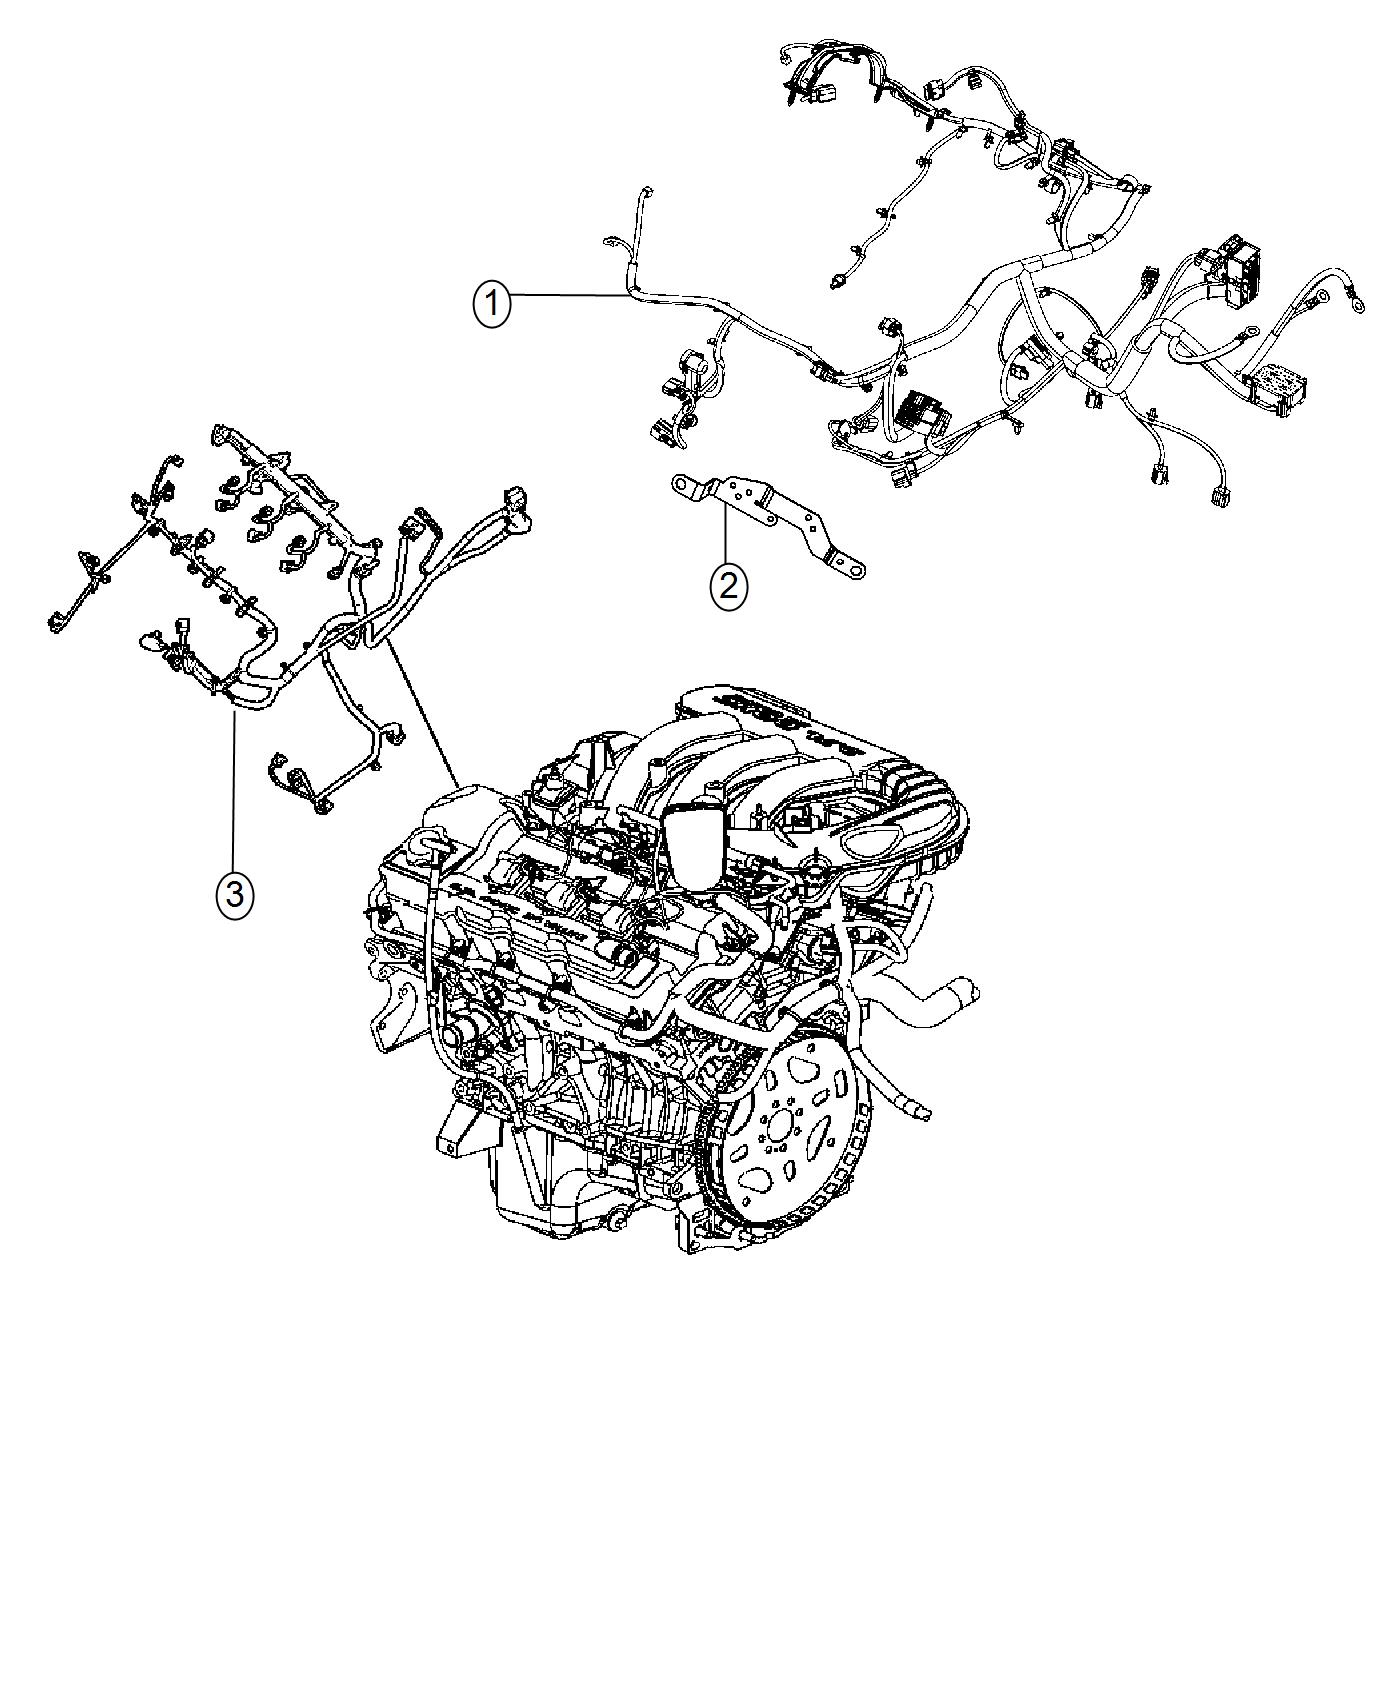 Dodge Journey Wiring Injector After 07 19 10 After 7 19